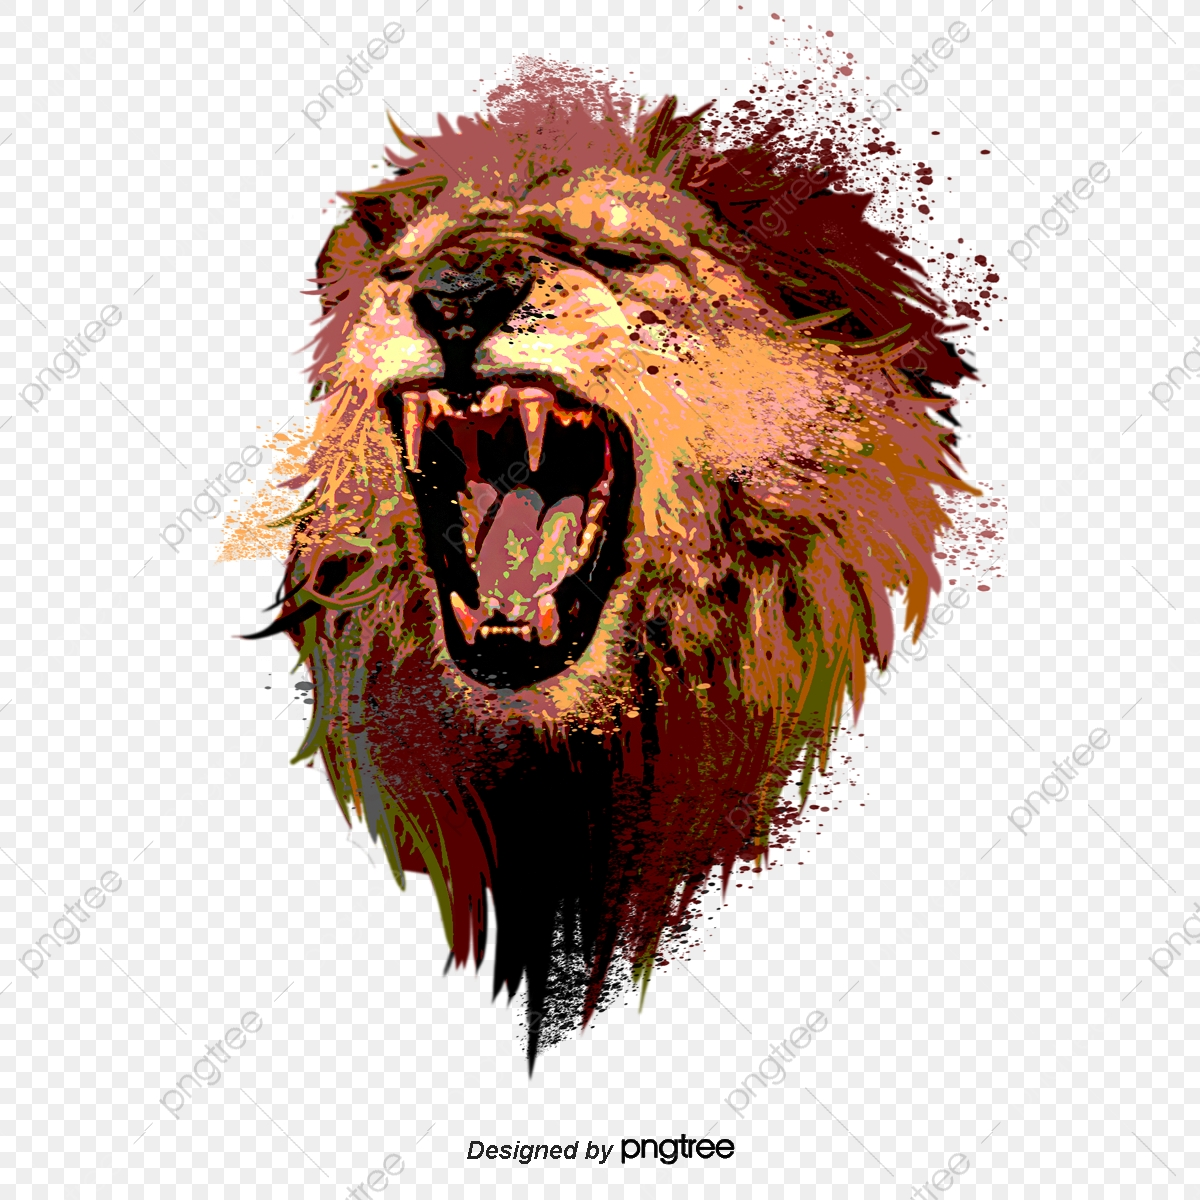 Hand Drawn Elements Of Roaring Lion Roar Male Lion Ferocious Roar Png Transparent Clipart Image And Psd File For Free Download